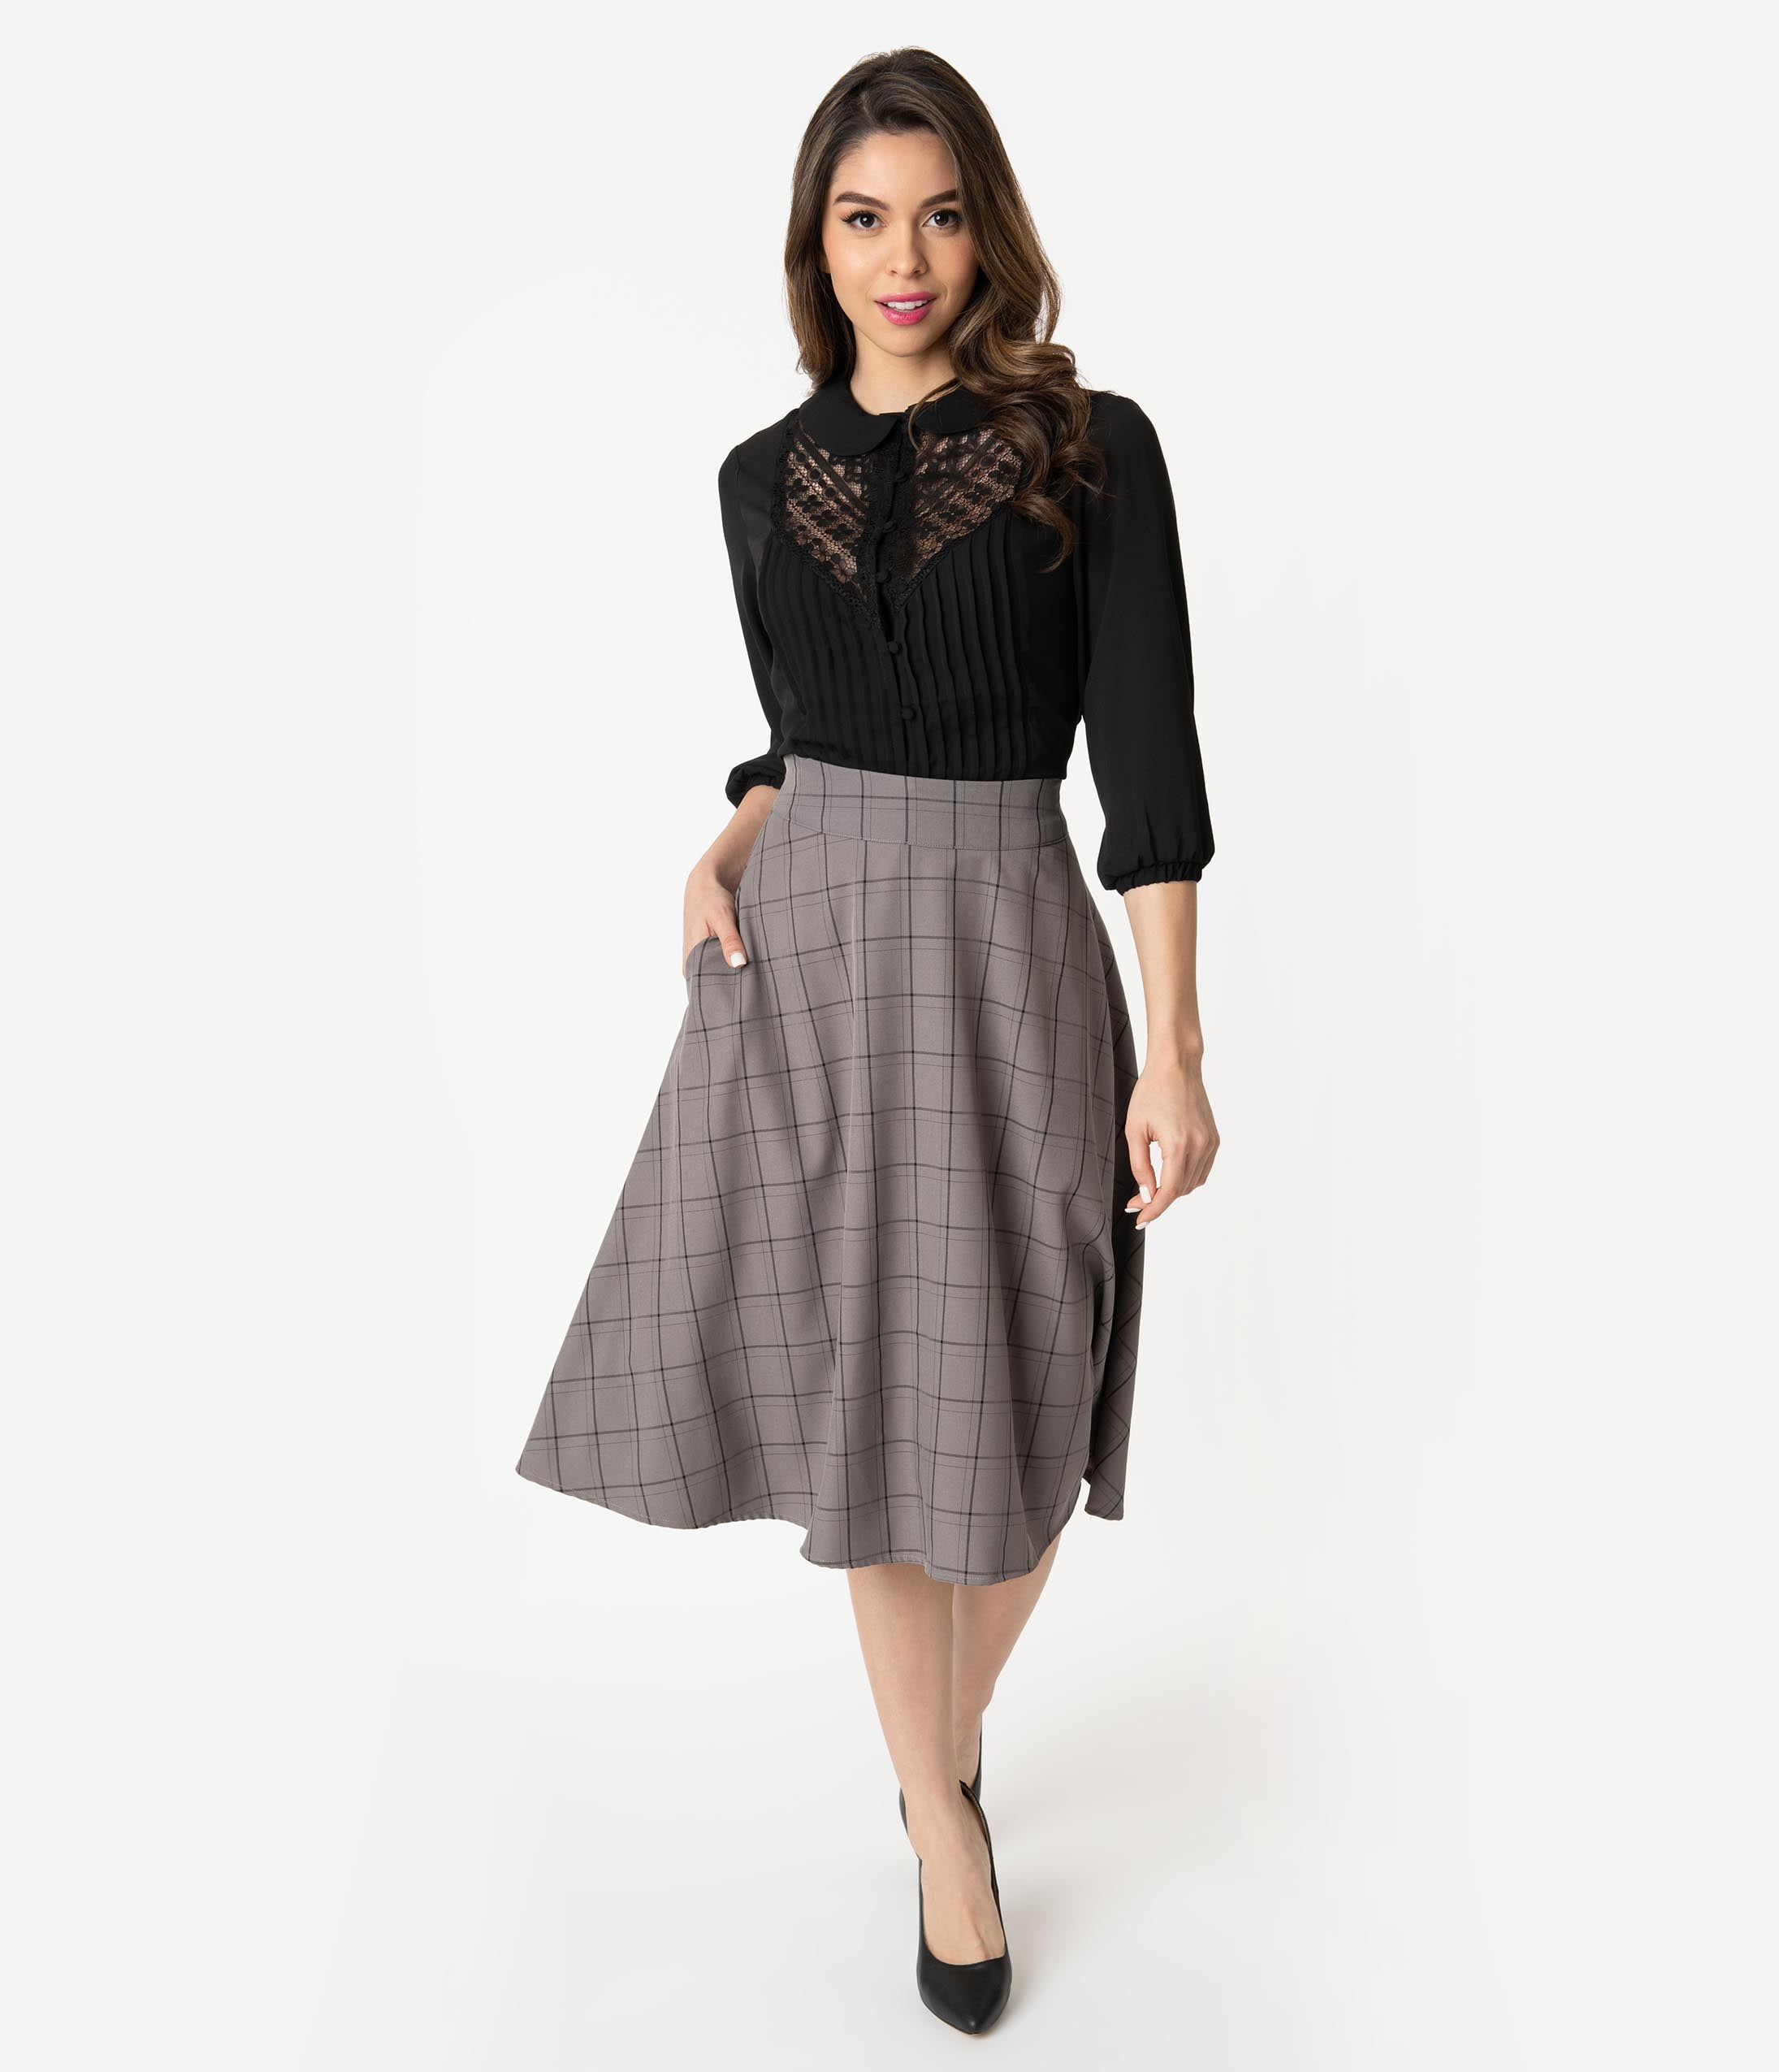 50s Skirt Styles | Poodle Skirts, Circle Skirts, Pencil Skirts 1950s Unique Vintage Retro Style Grey  Black Windowpane High Waist Vivien Swing Skirt $58.00 AT vintagedancer.com